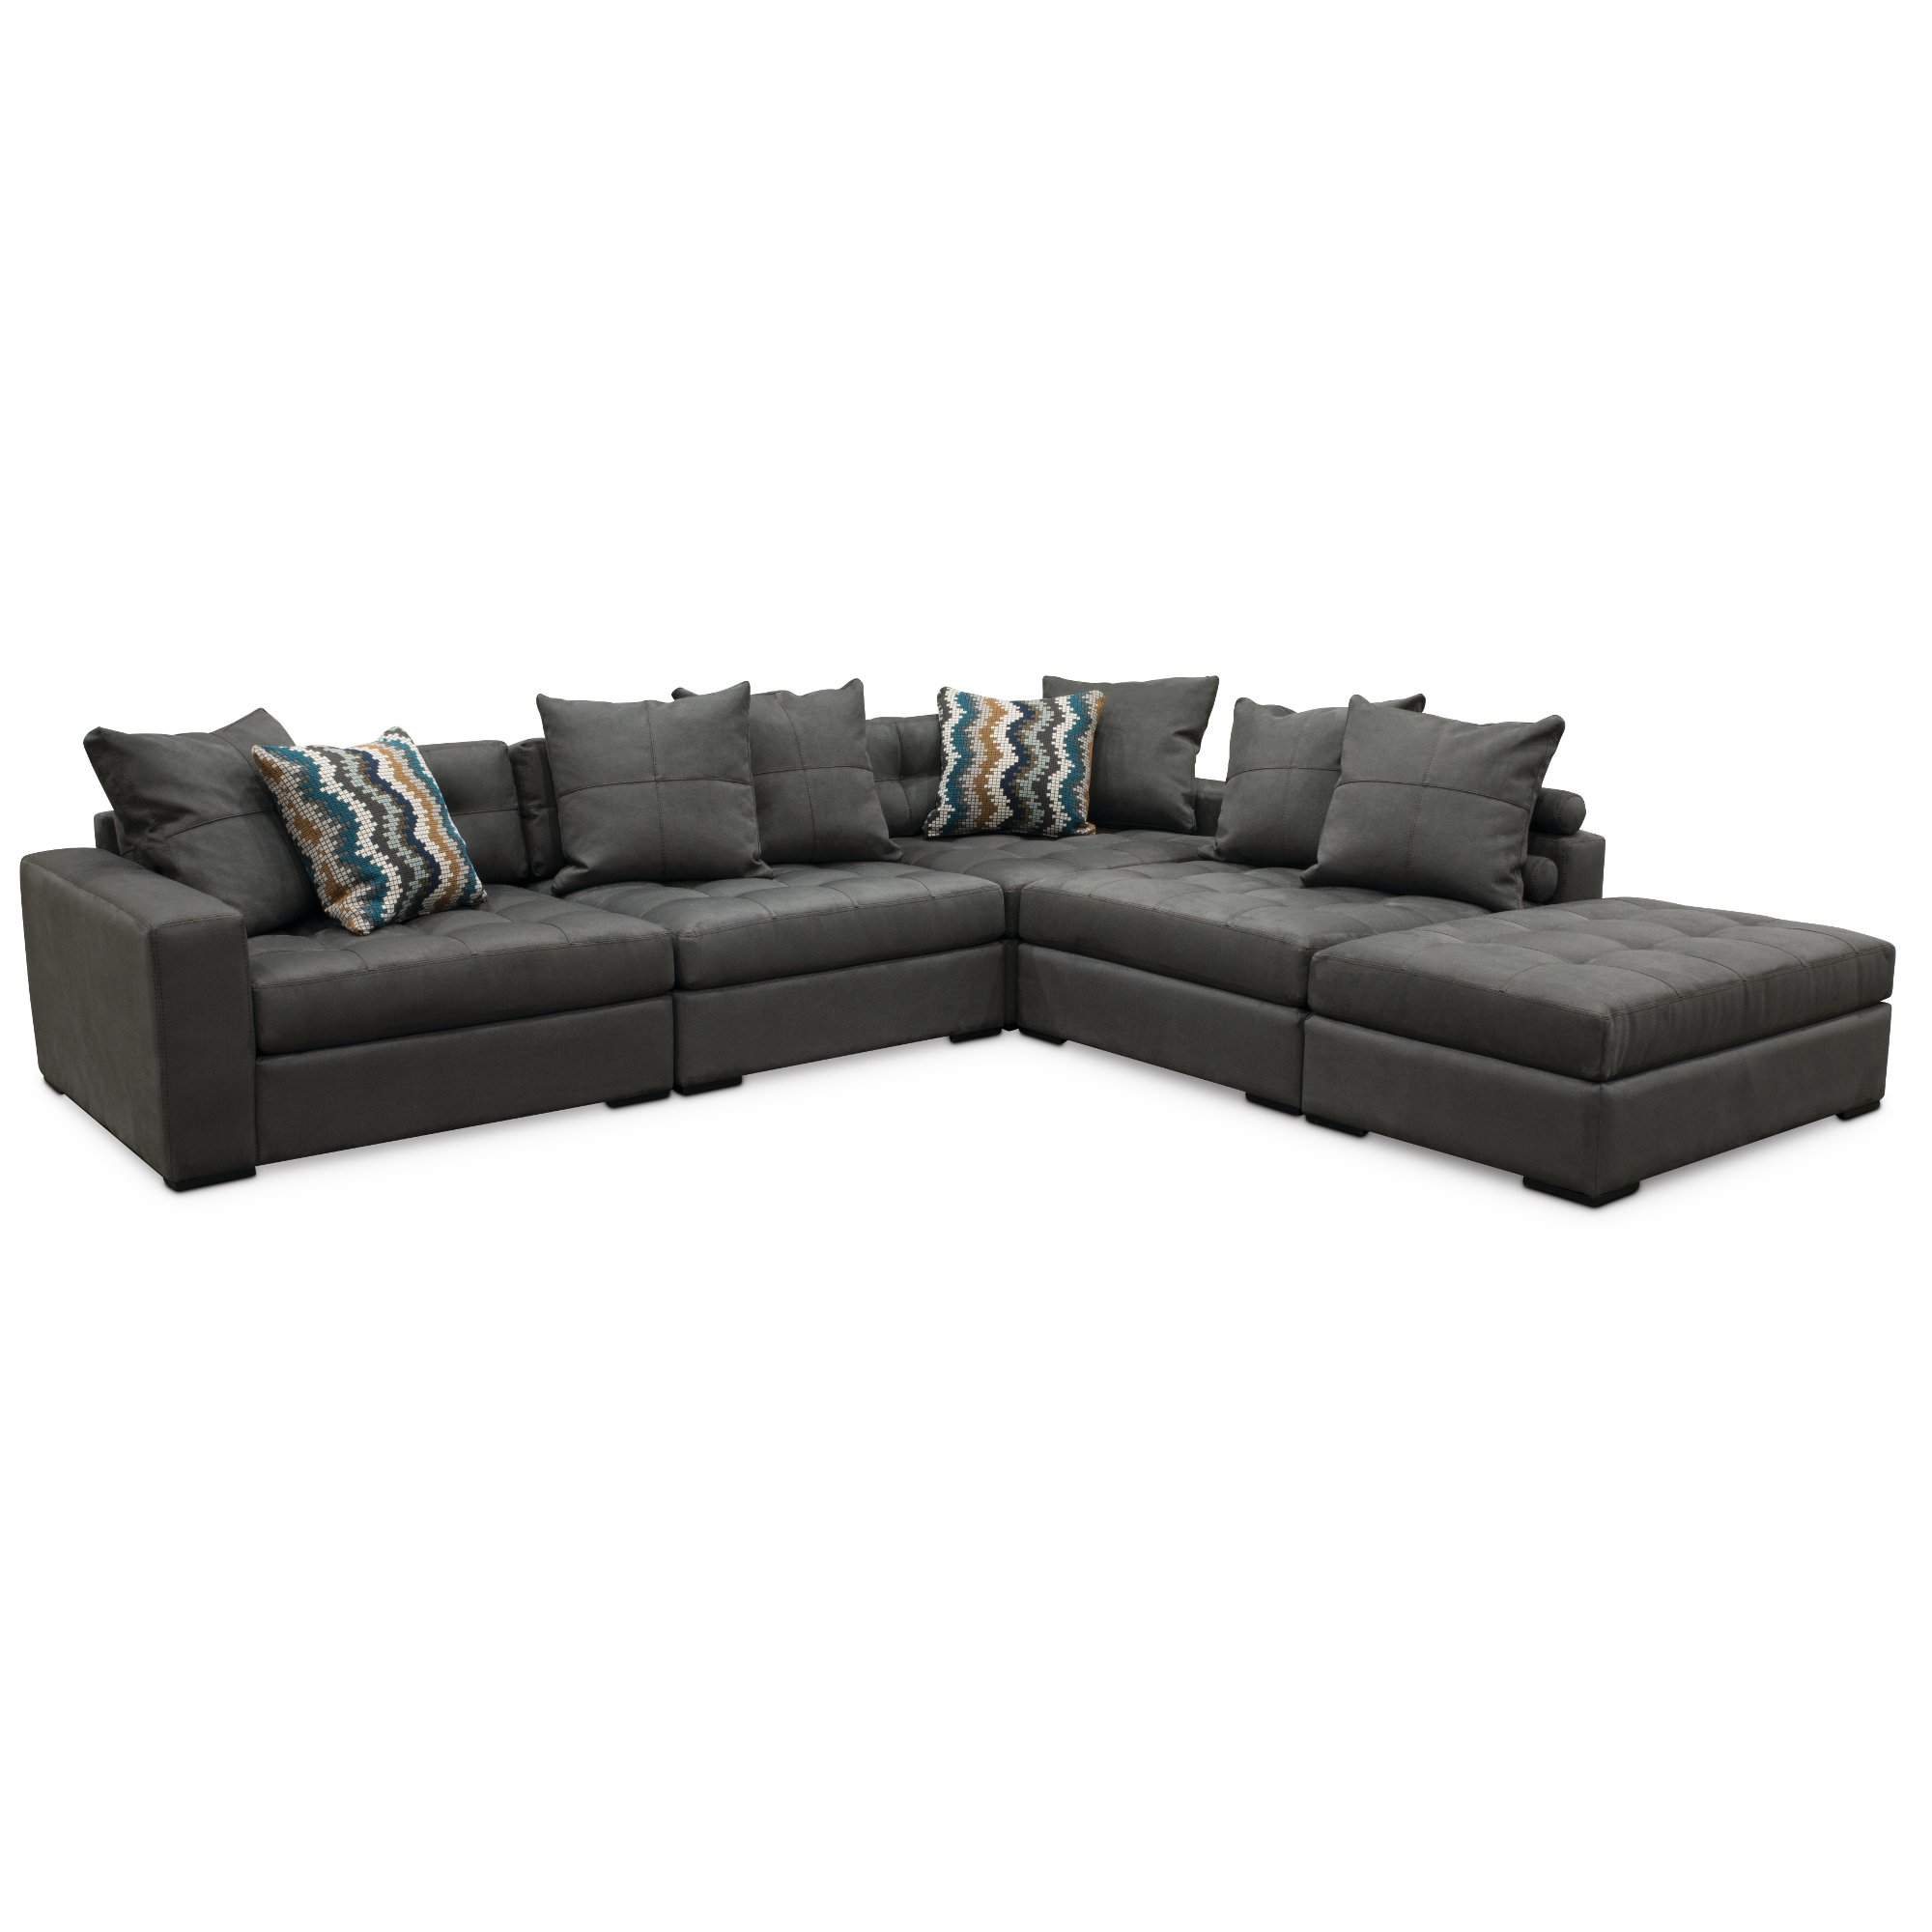 Contemporary 4-Piece Sectional Sofas